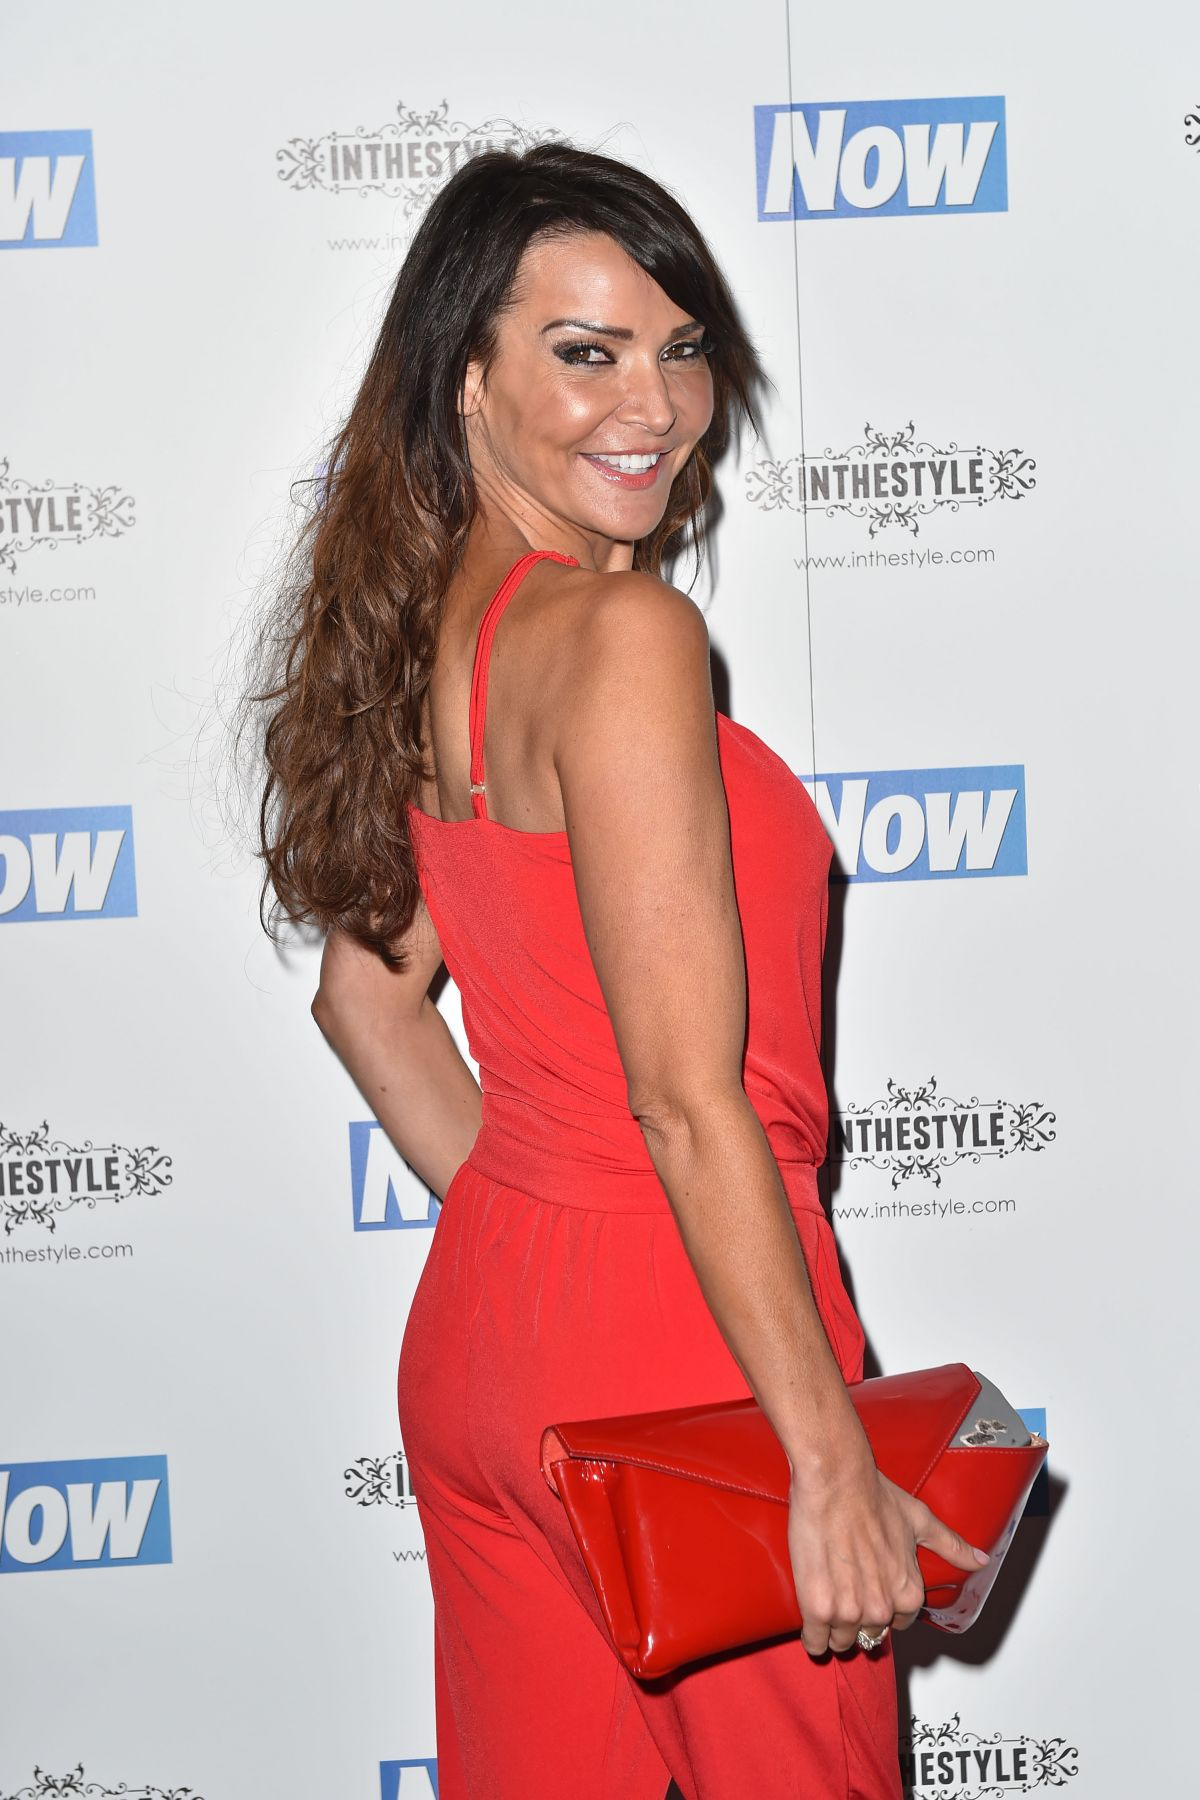 LIZZIE CUNDY at Now Christmas Party in London